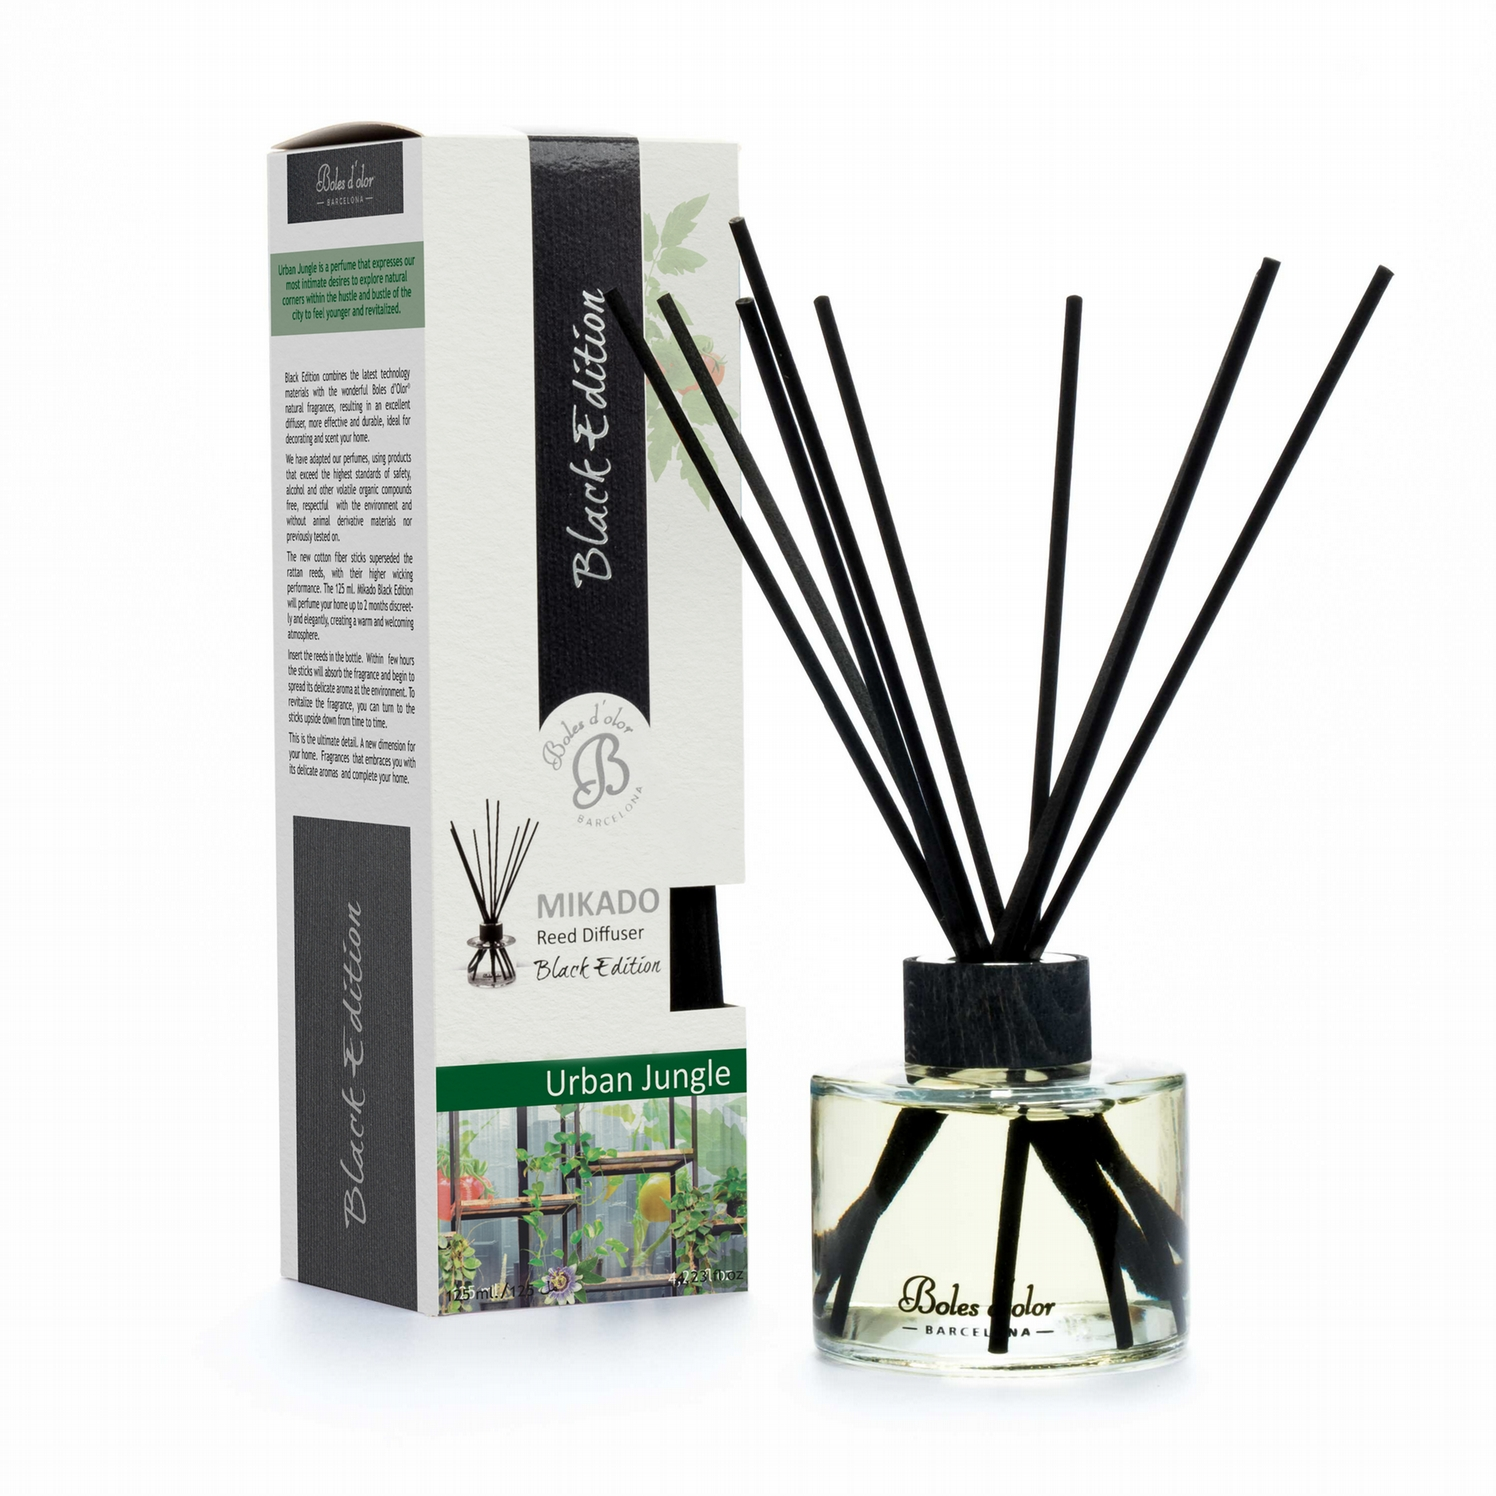 BOLES D'OLOR - MIKADO AMBIENTADOR URBAN JUNGLE 125ML